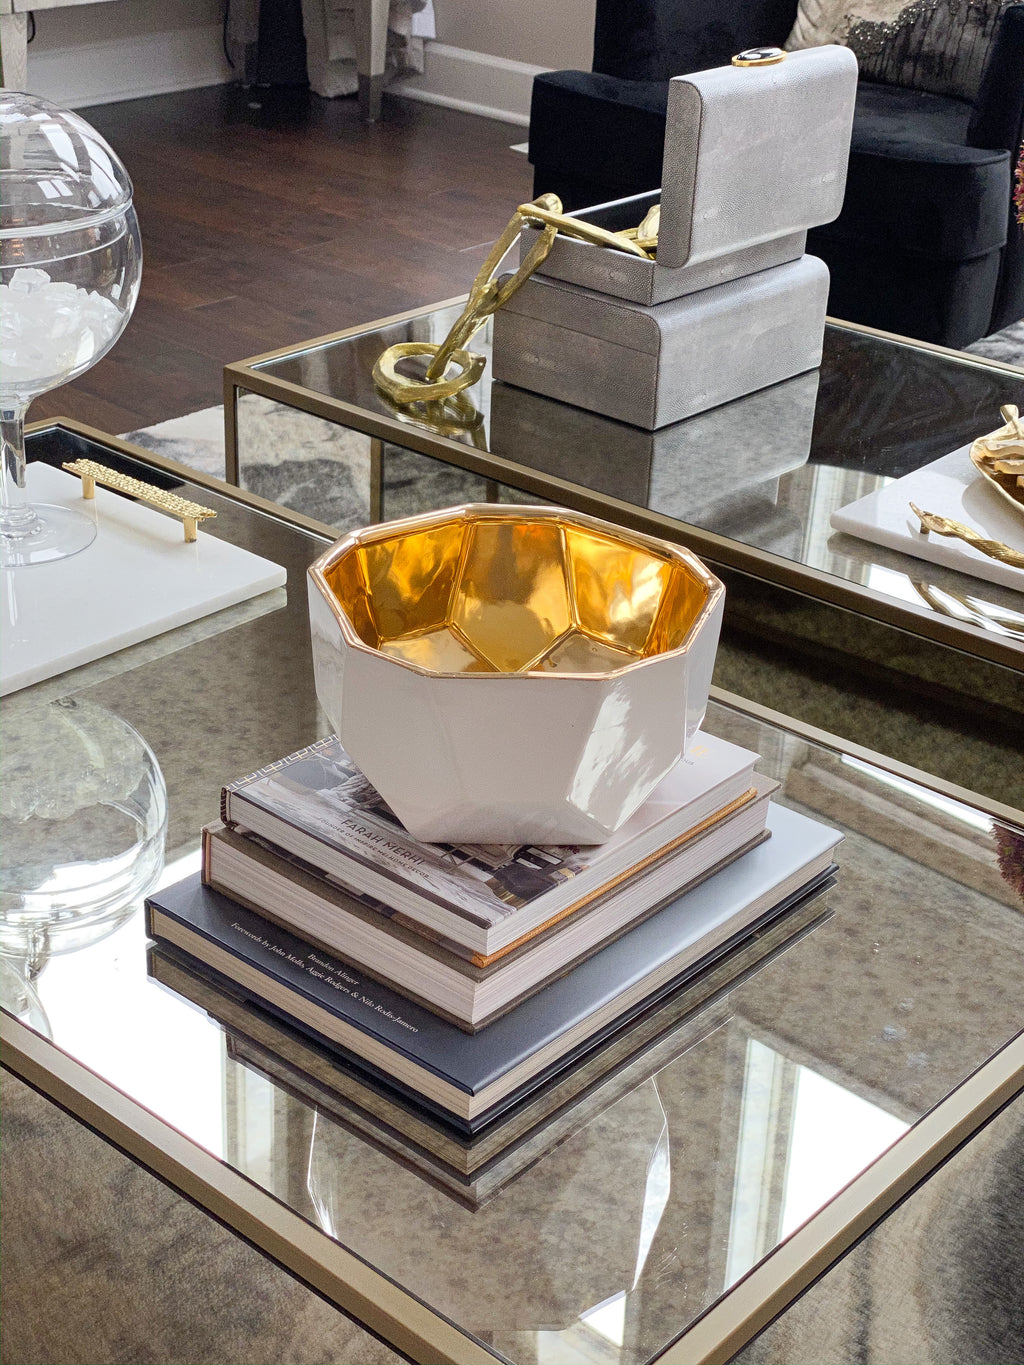 White Geometric Bowl with Gold Metallic Center-Inspire Me! Home Decor